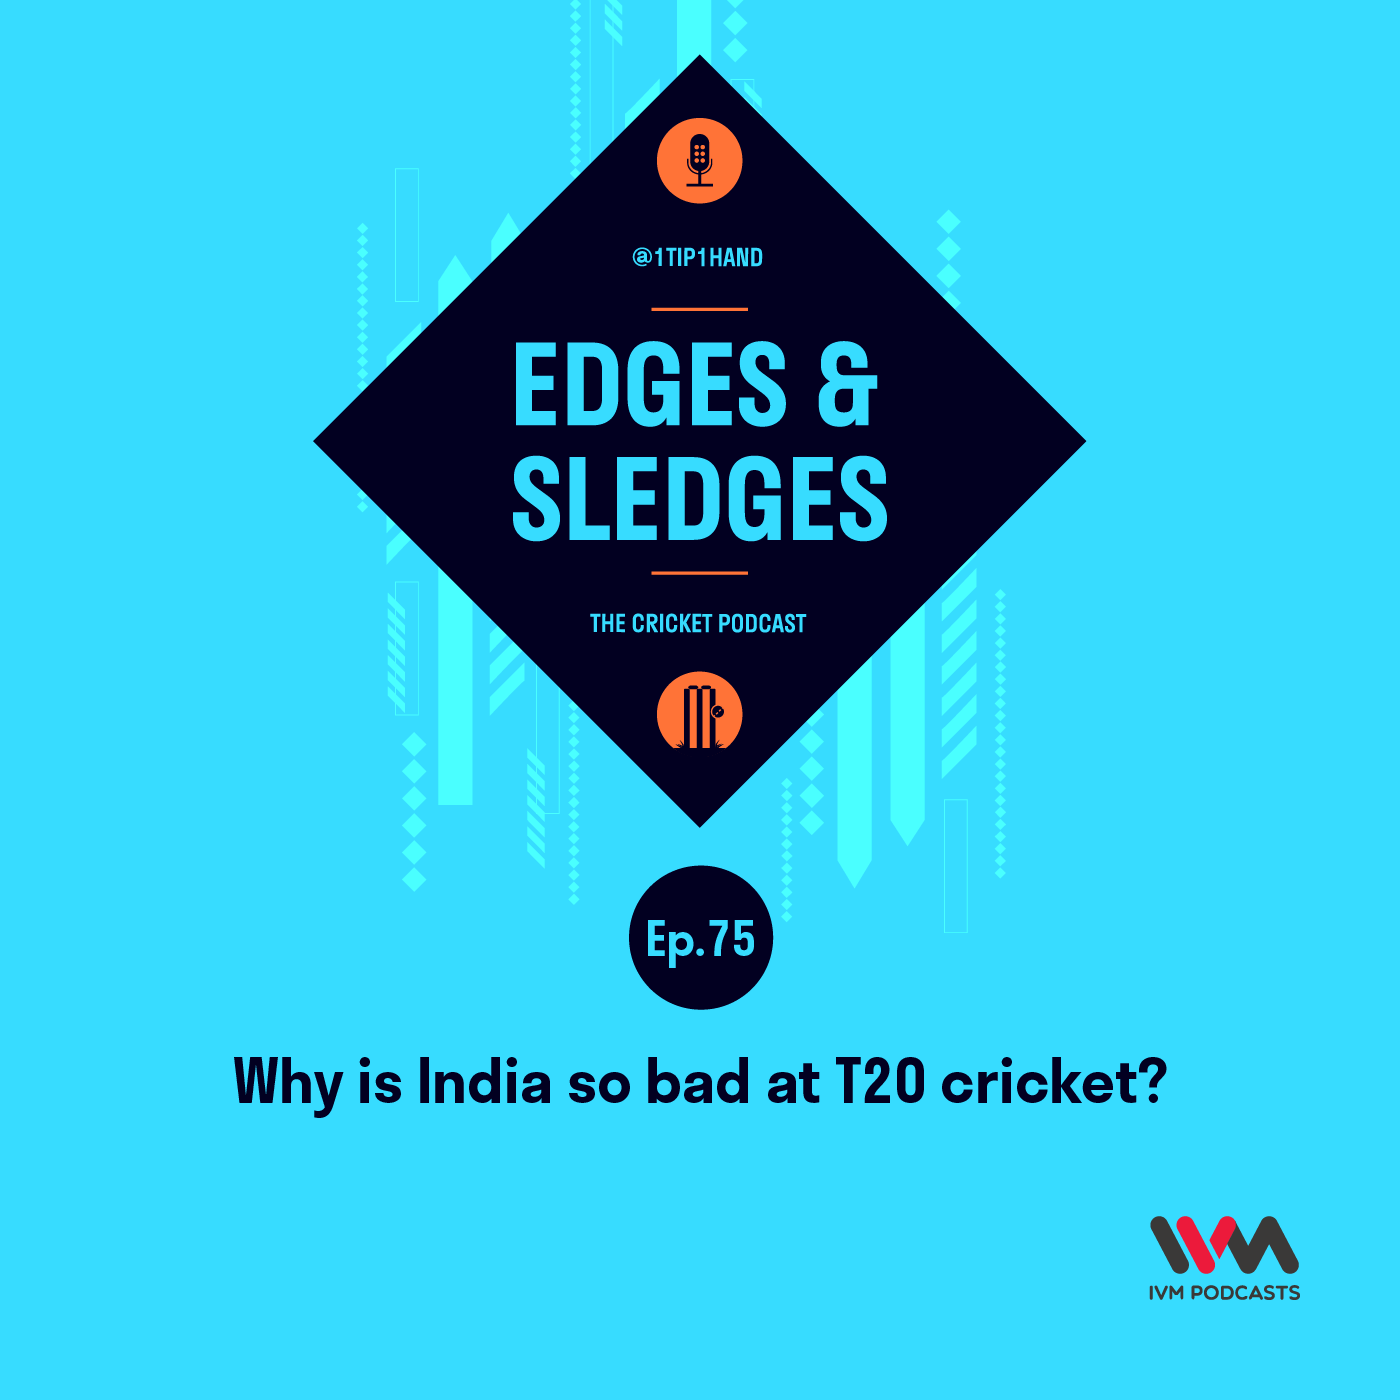 Ep. 75: Why is India so bad at T20 cricket?